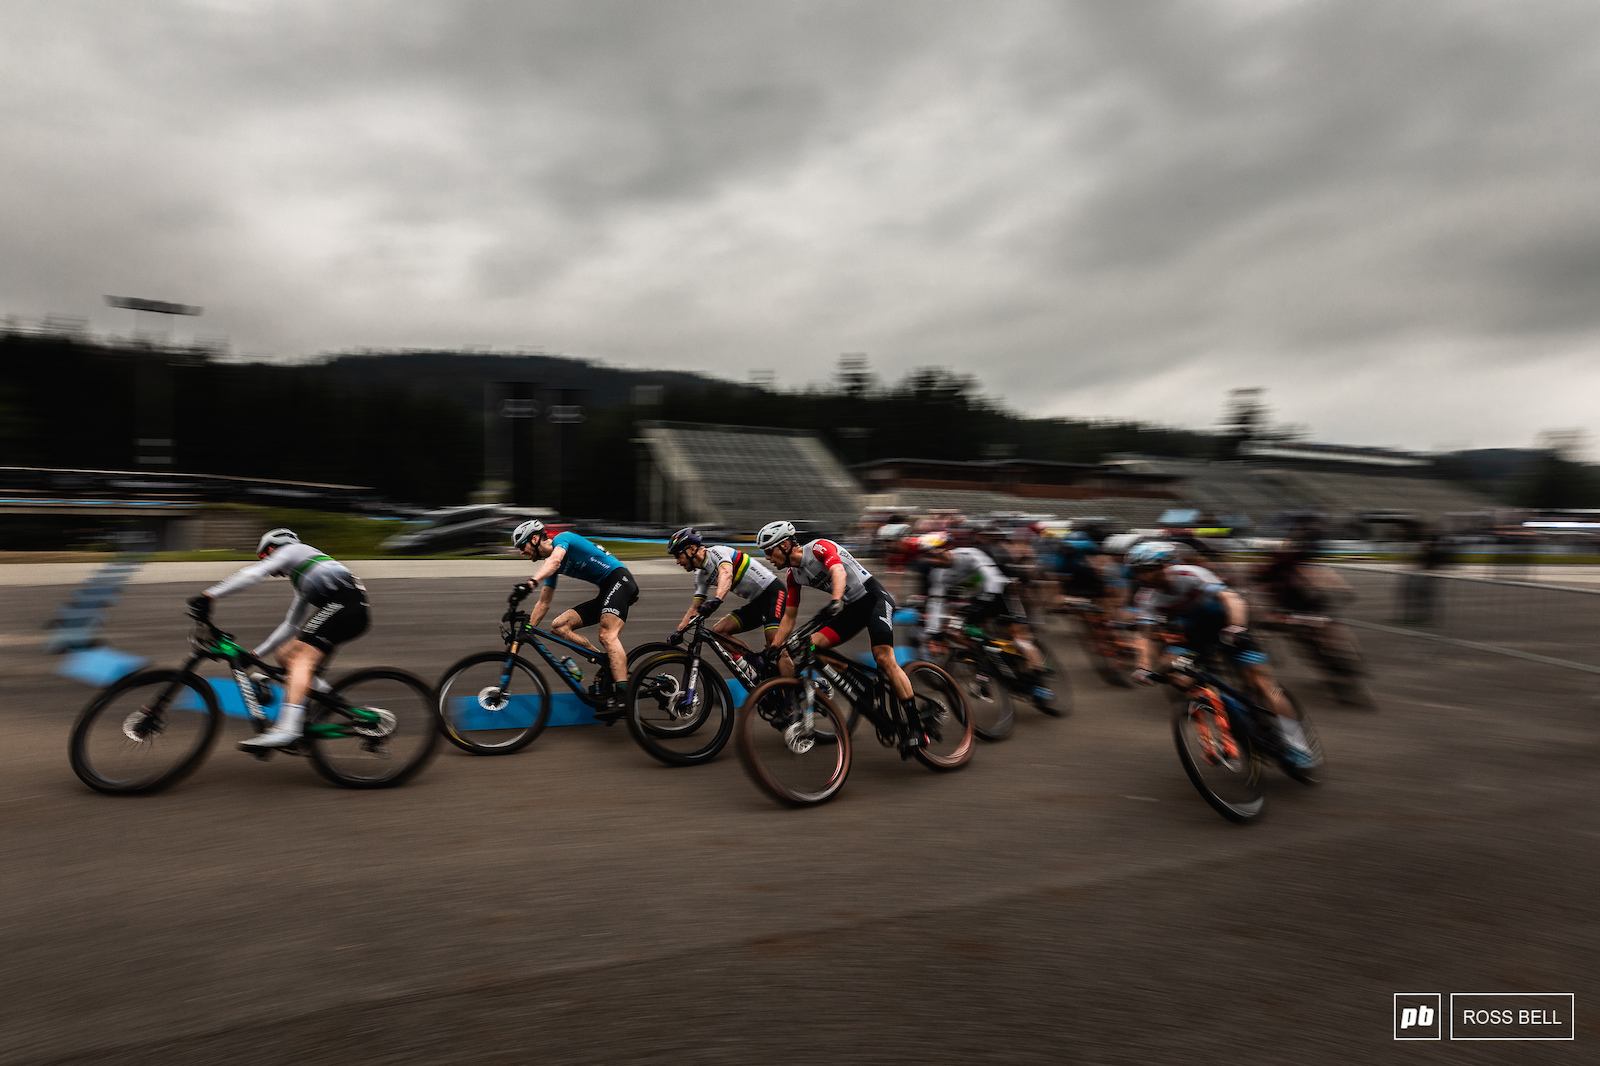 The racing was fast and frantic as we ve come to expect from the short track.